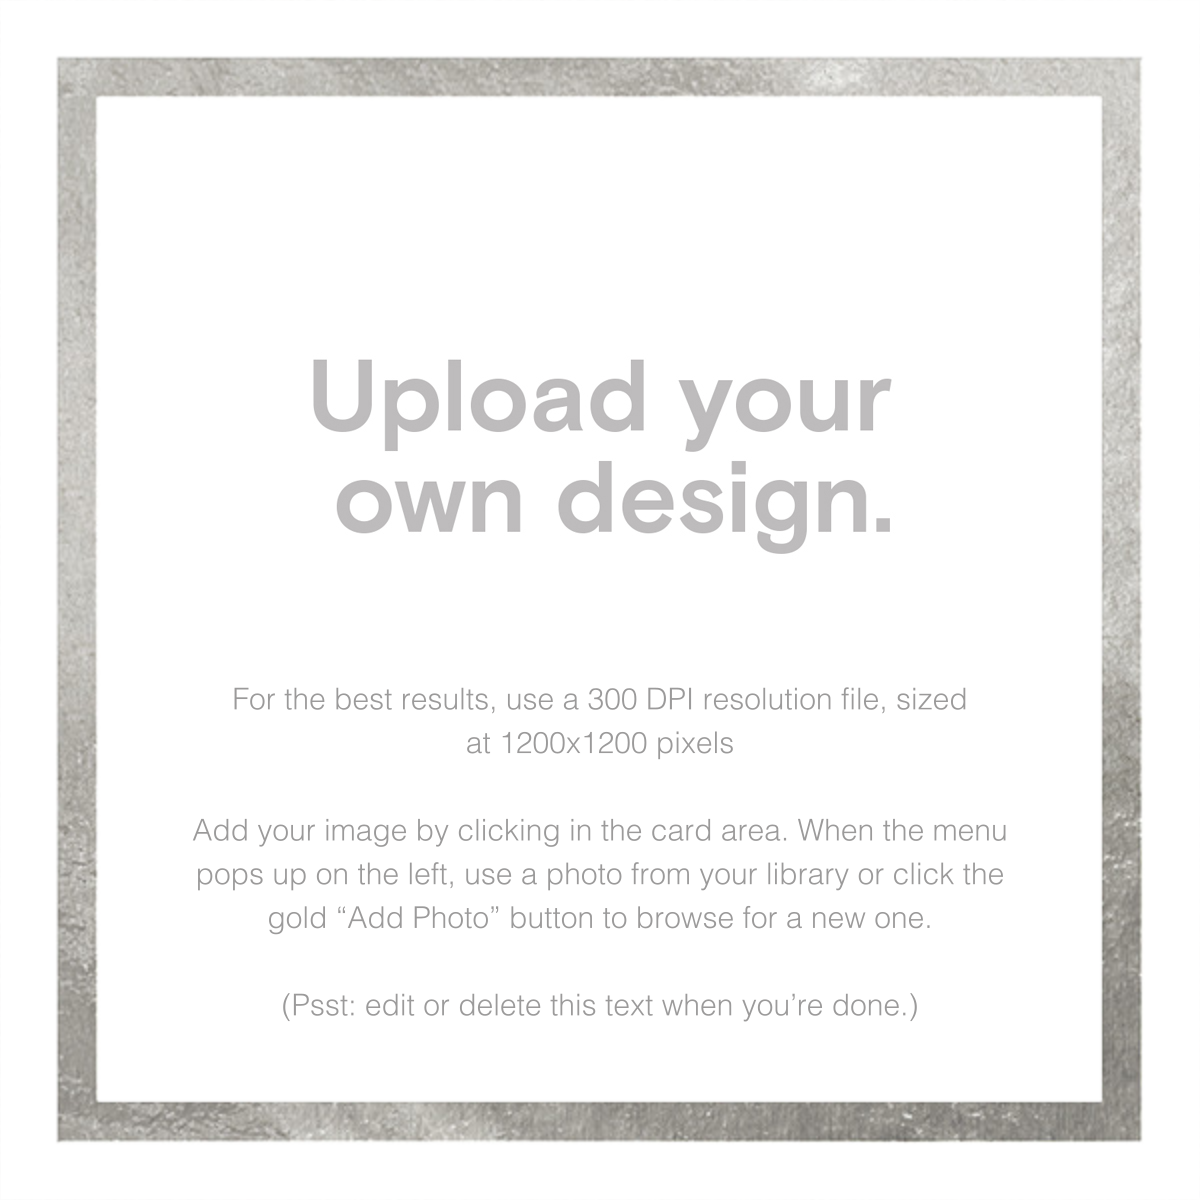 Custom Foil (Two-Sided Square) - Silver - Paperless Post - Upload your own